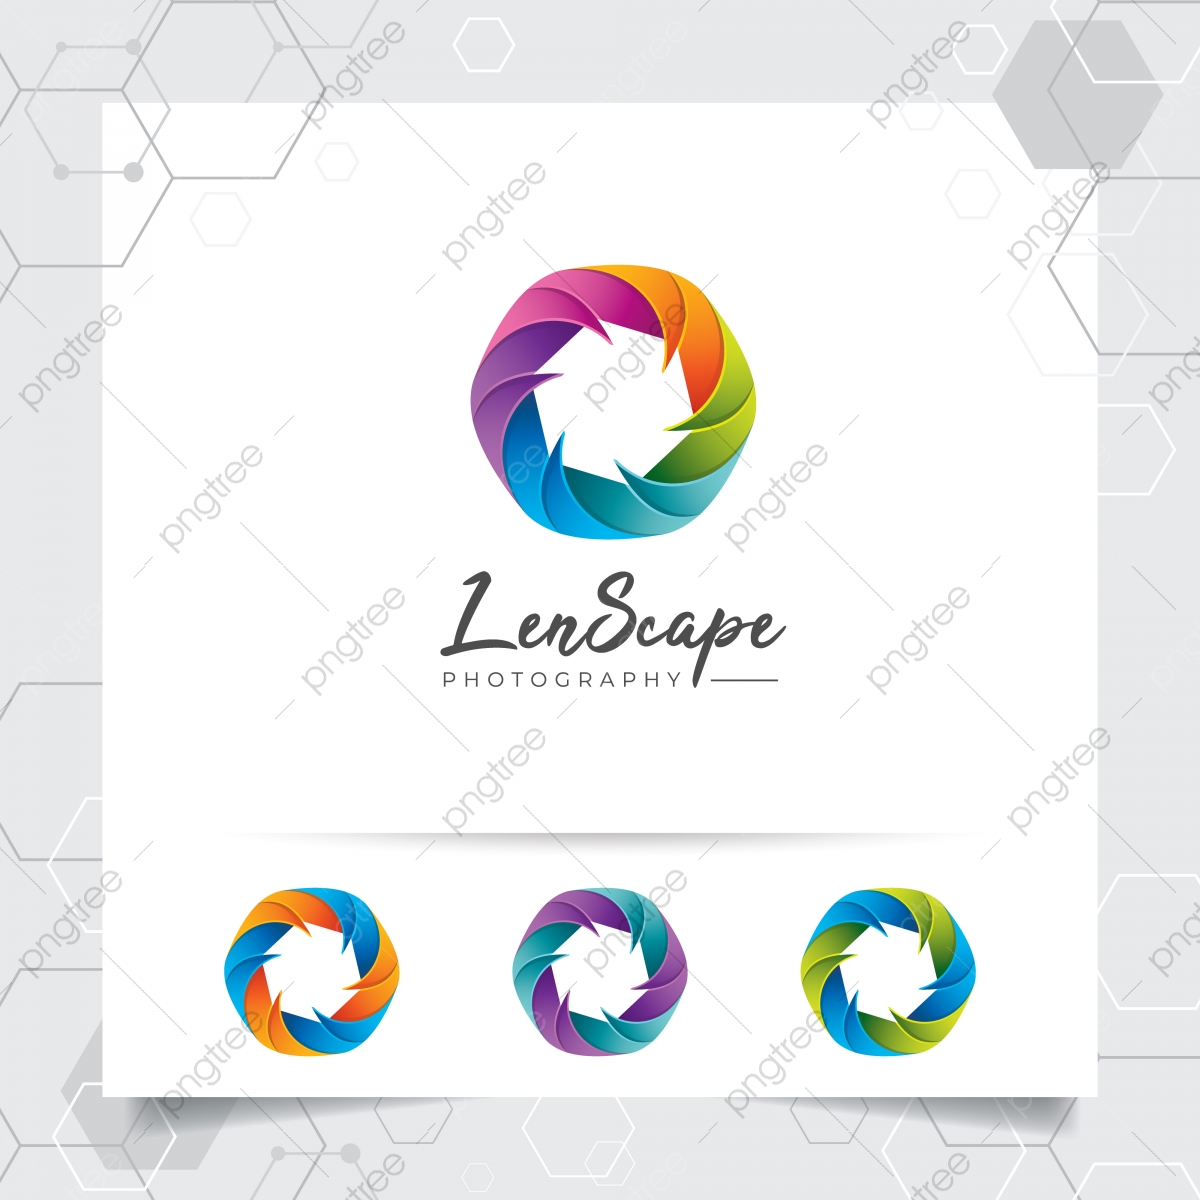 Camera Photography Logo Design With Concept Of Colorful Camera Lens Icon And Photo Vector For Photographer Studio Photo And Wedding Photography Template For Free Download On Pngtree